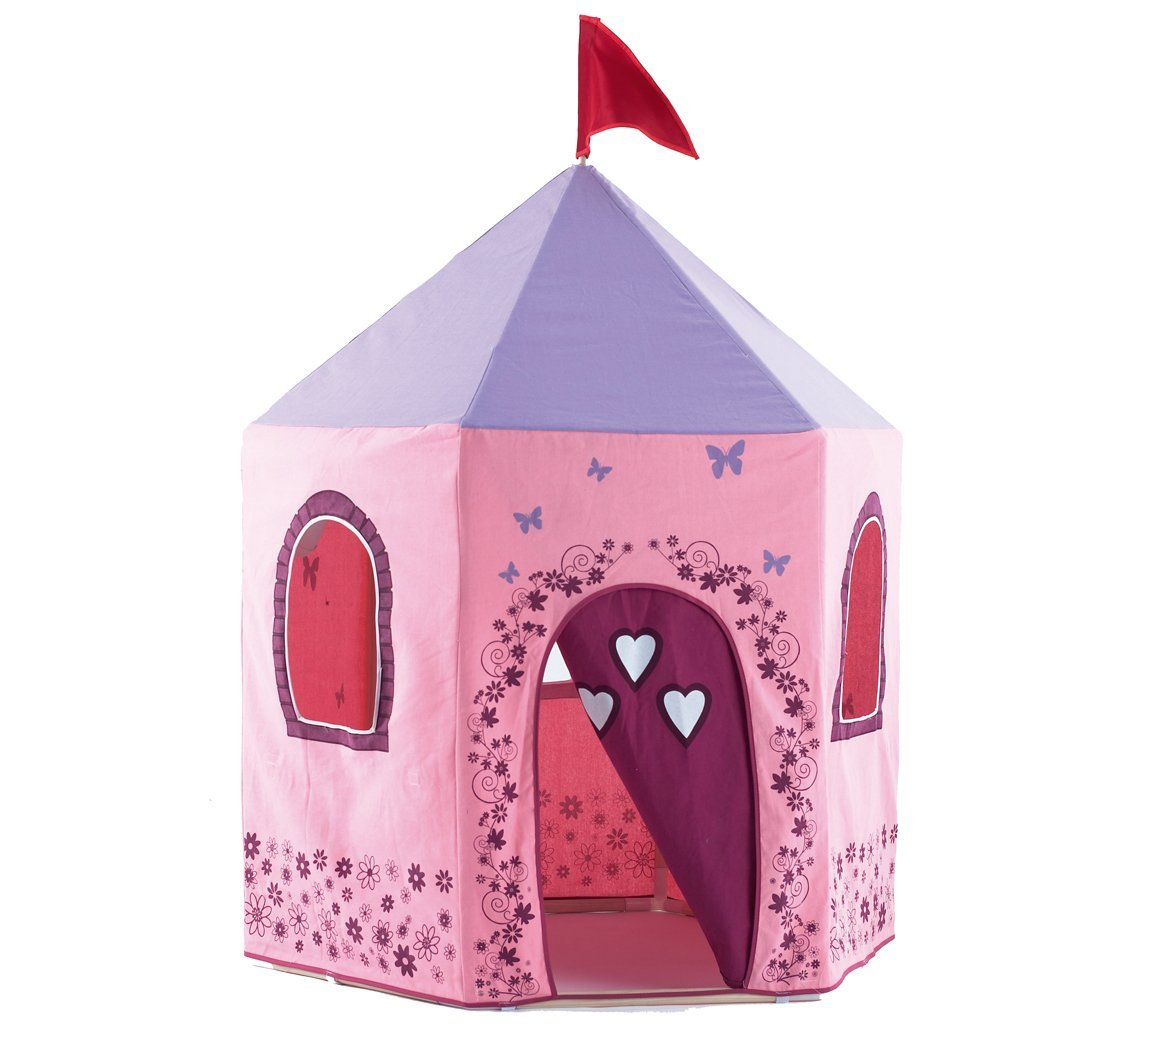 Fairy Princess Play Tent Castle with Pink and Purple Cotton Canvas